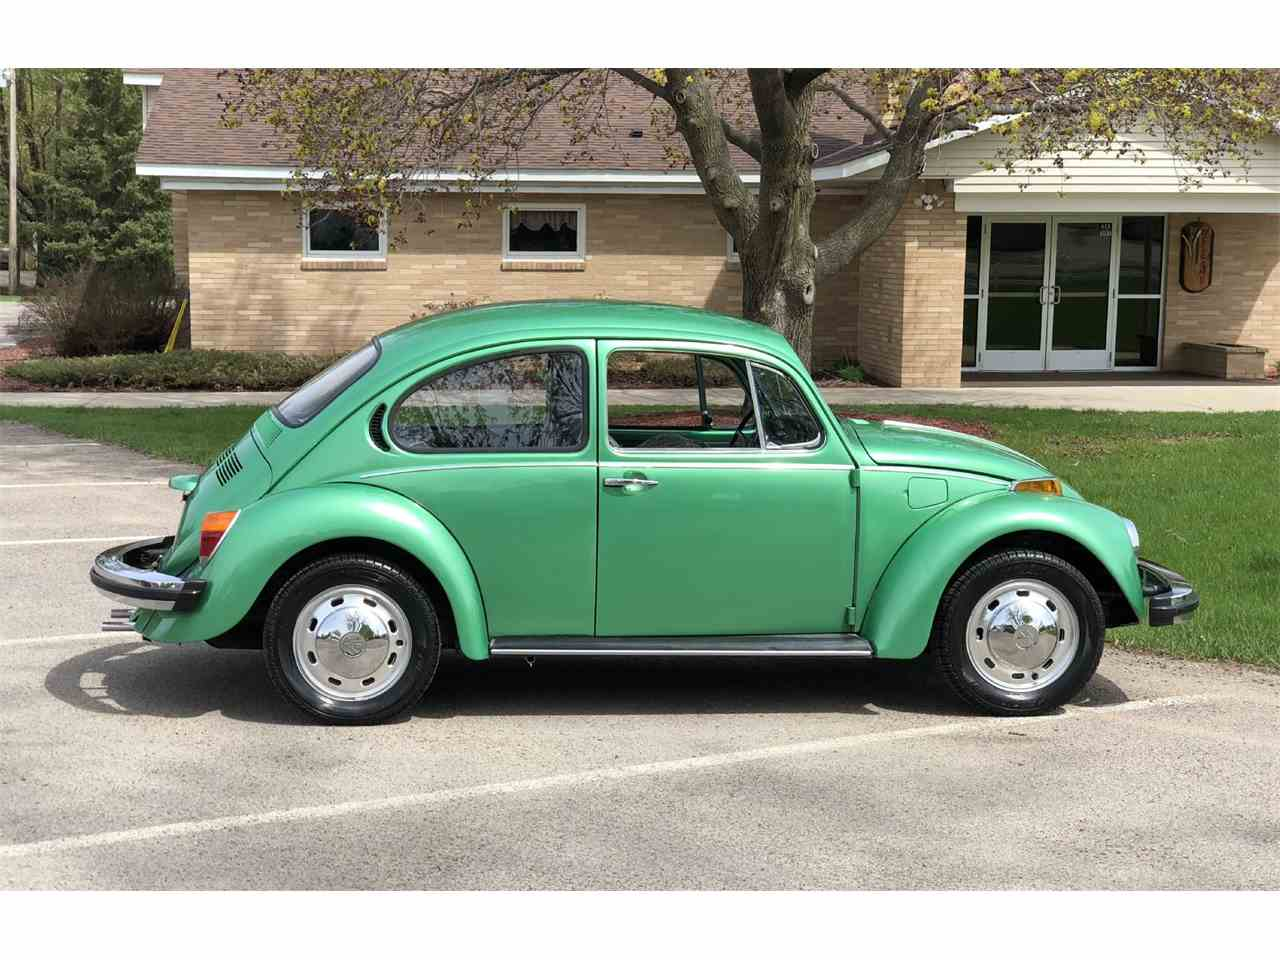 Large Picture of '74 Beetle located in Maple Lake Minnesota - $9,950.00 - NESE